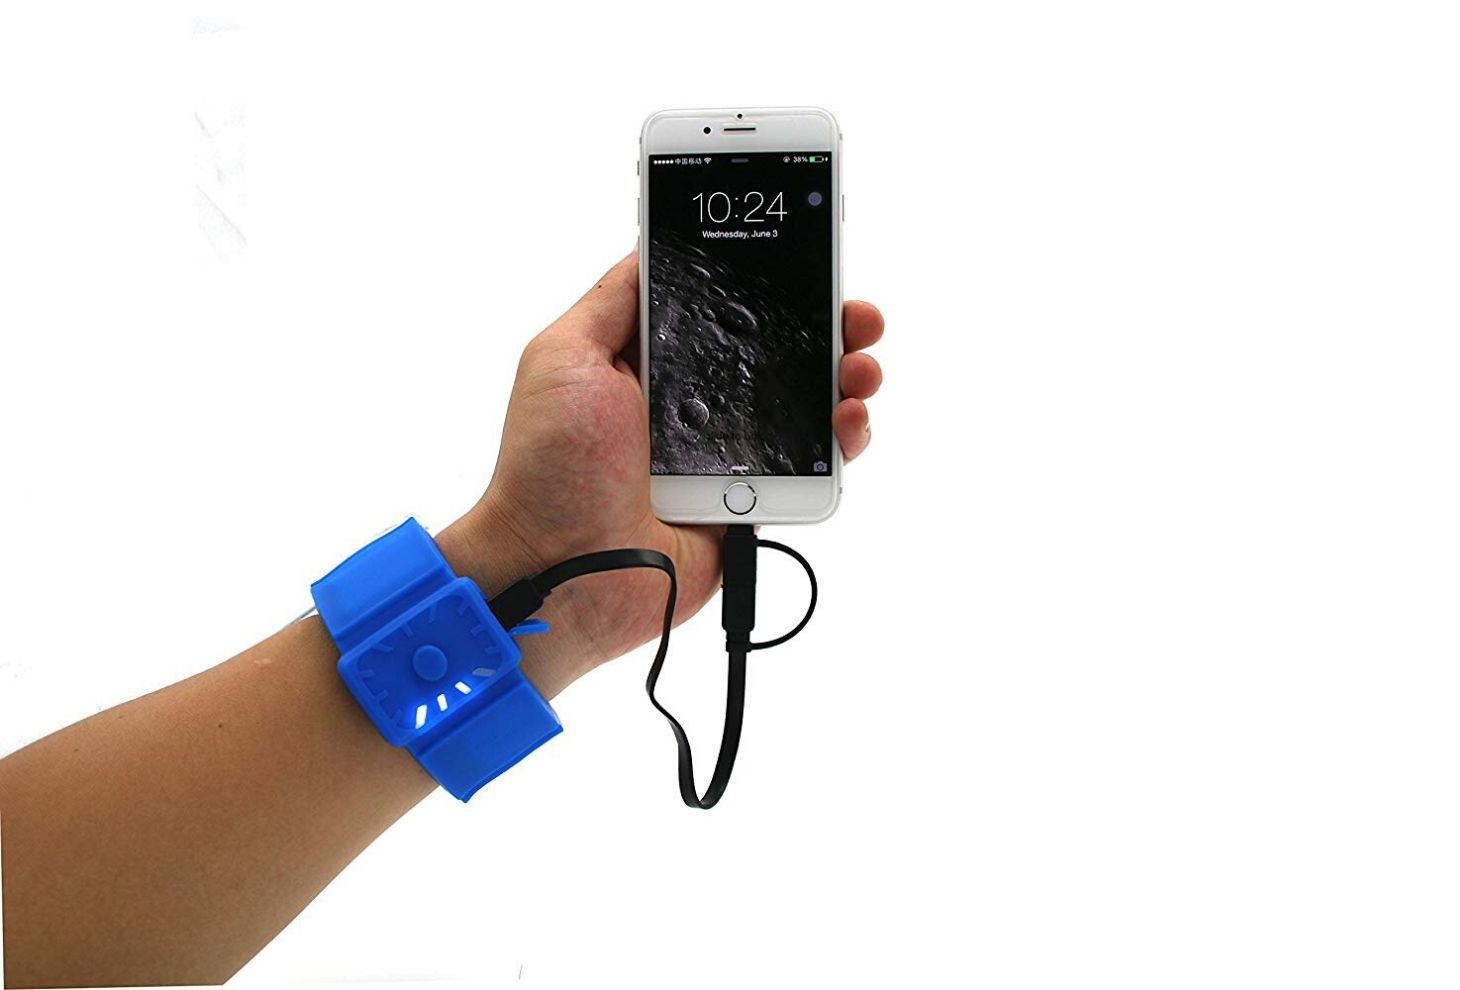 9 Life-Saving Gadgets Everyone Should Know About